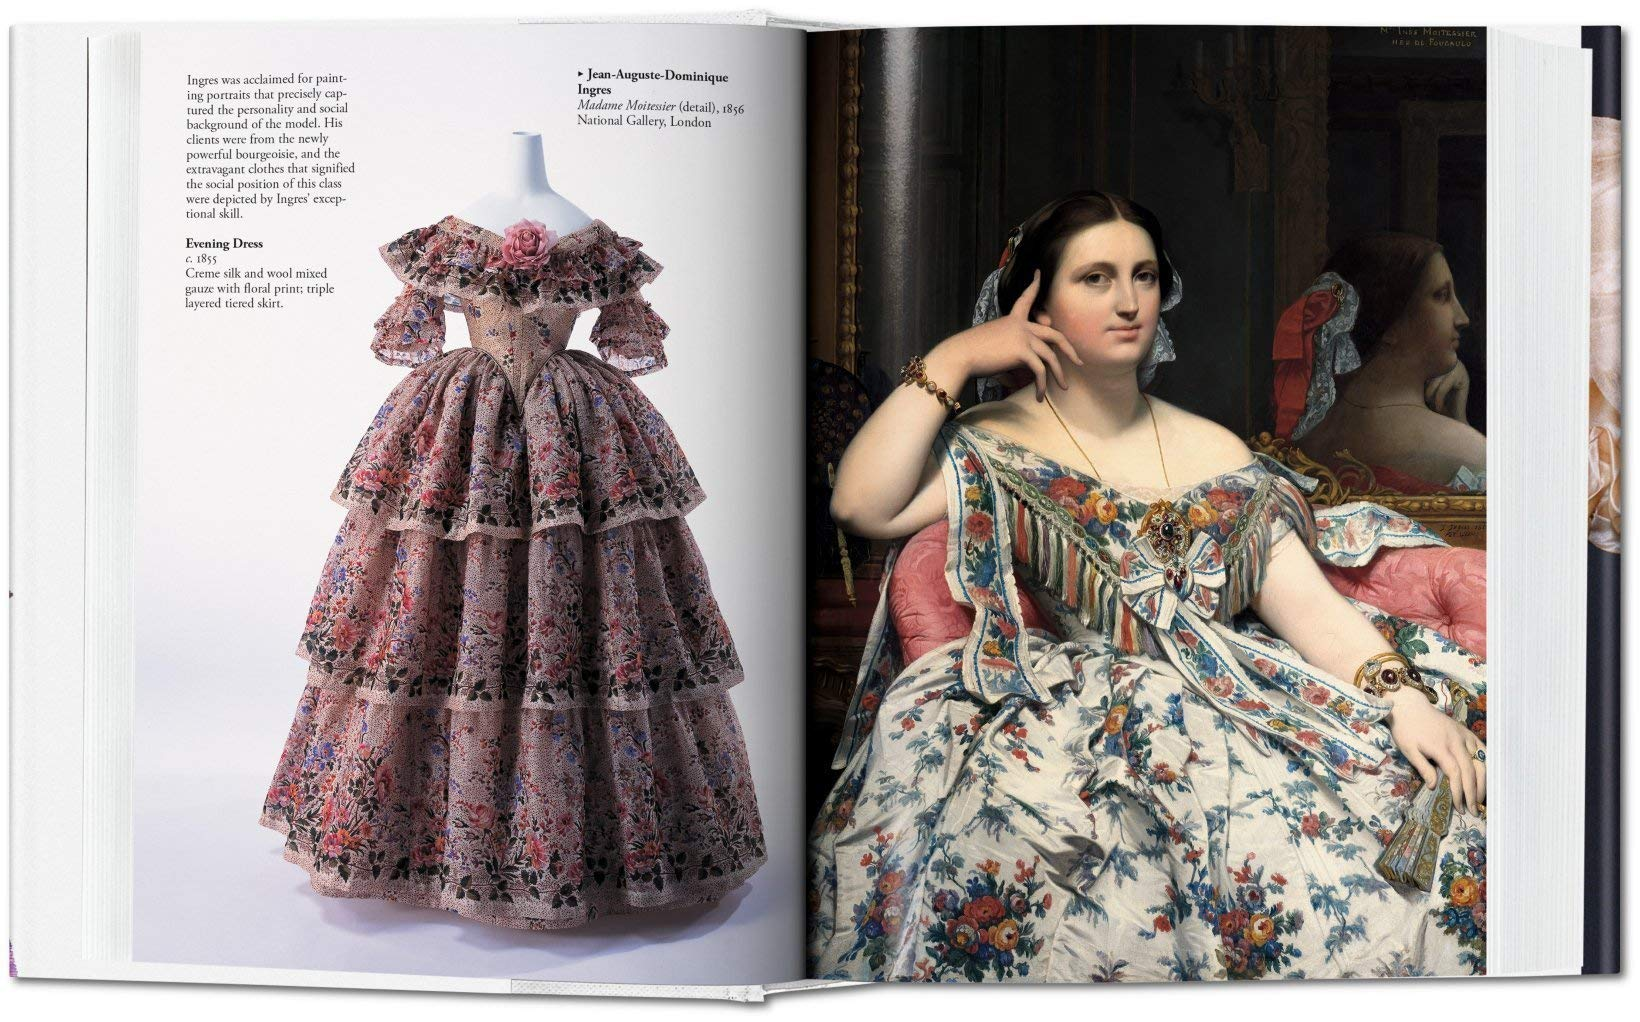 Fashion History From The 18th To The 20th Century Bibliotheca Universalis Taschen 9783836557191 Amazon Com Books